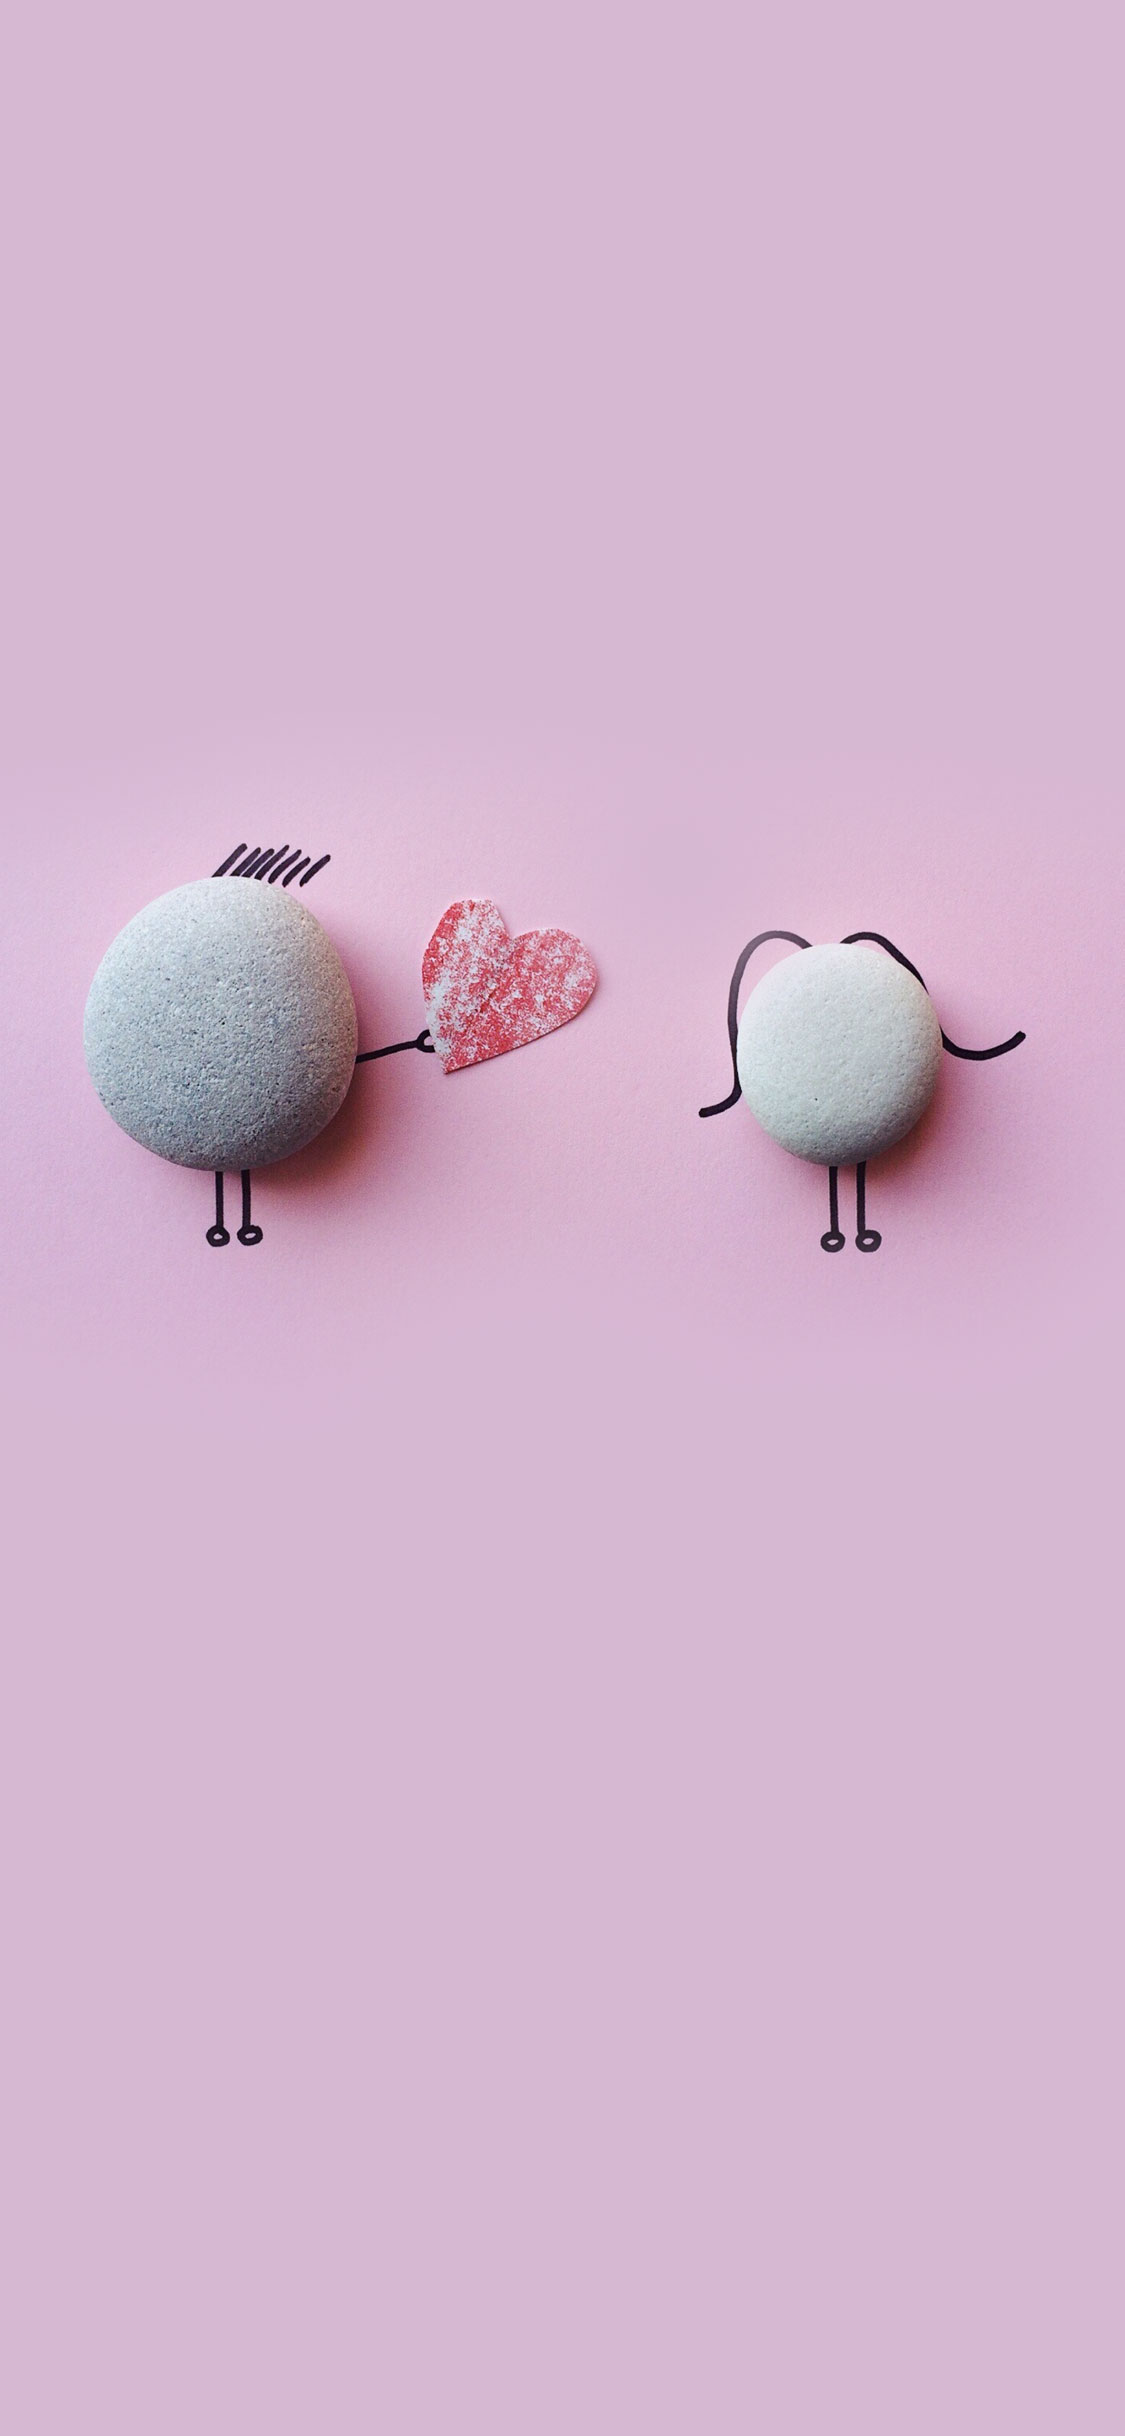 cute love iPhone background